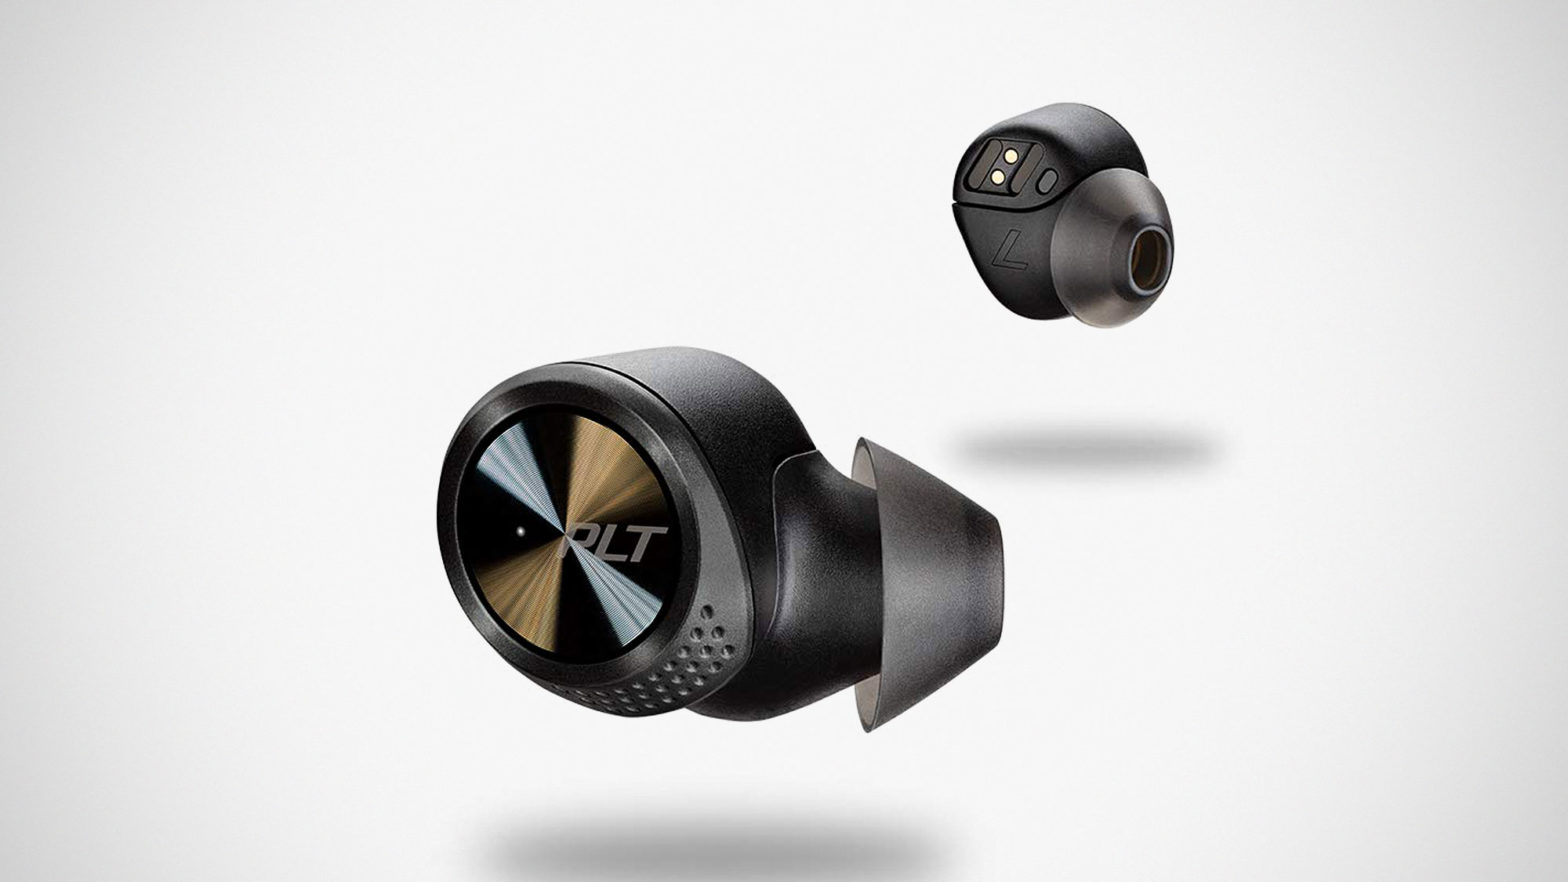 New Plantronics BackBeat True Wireless Earbuds